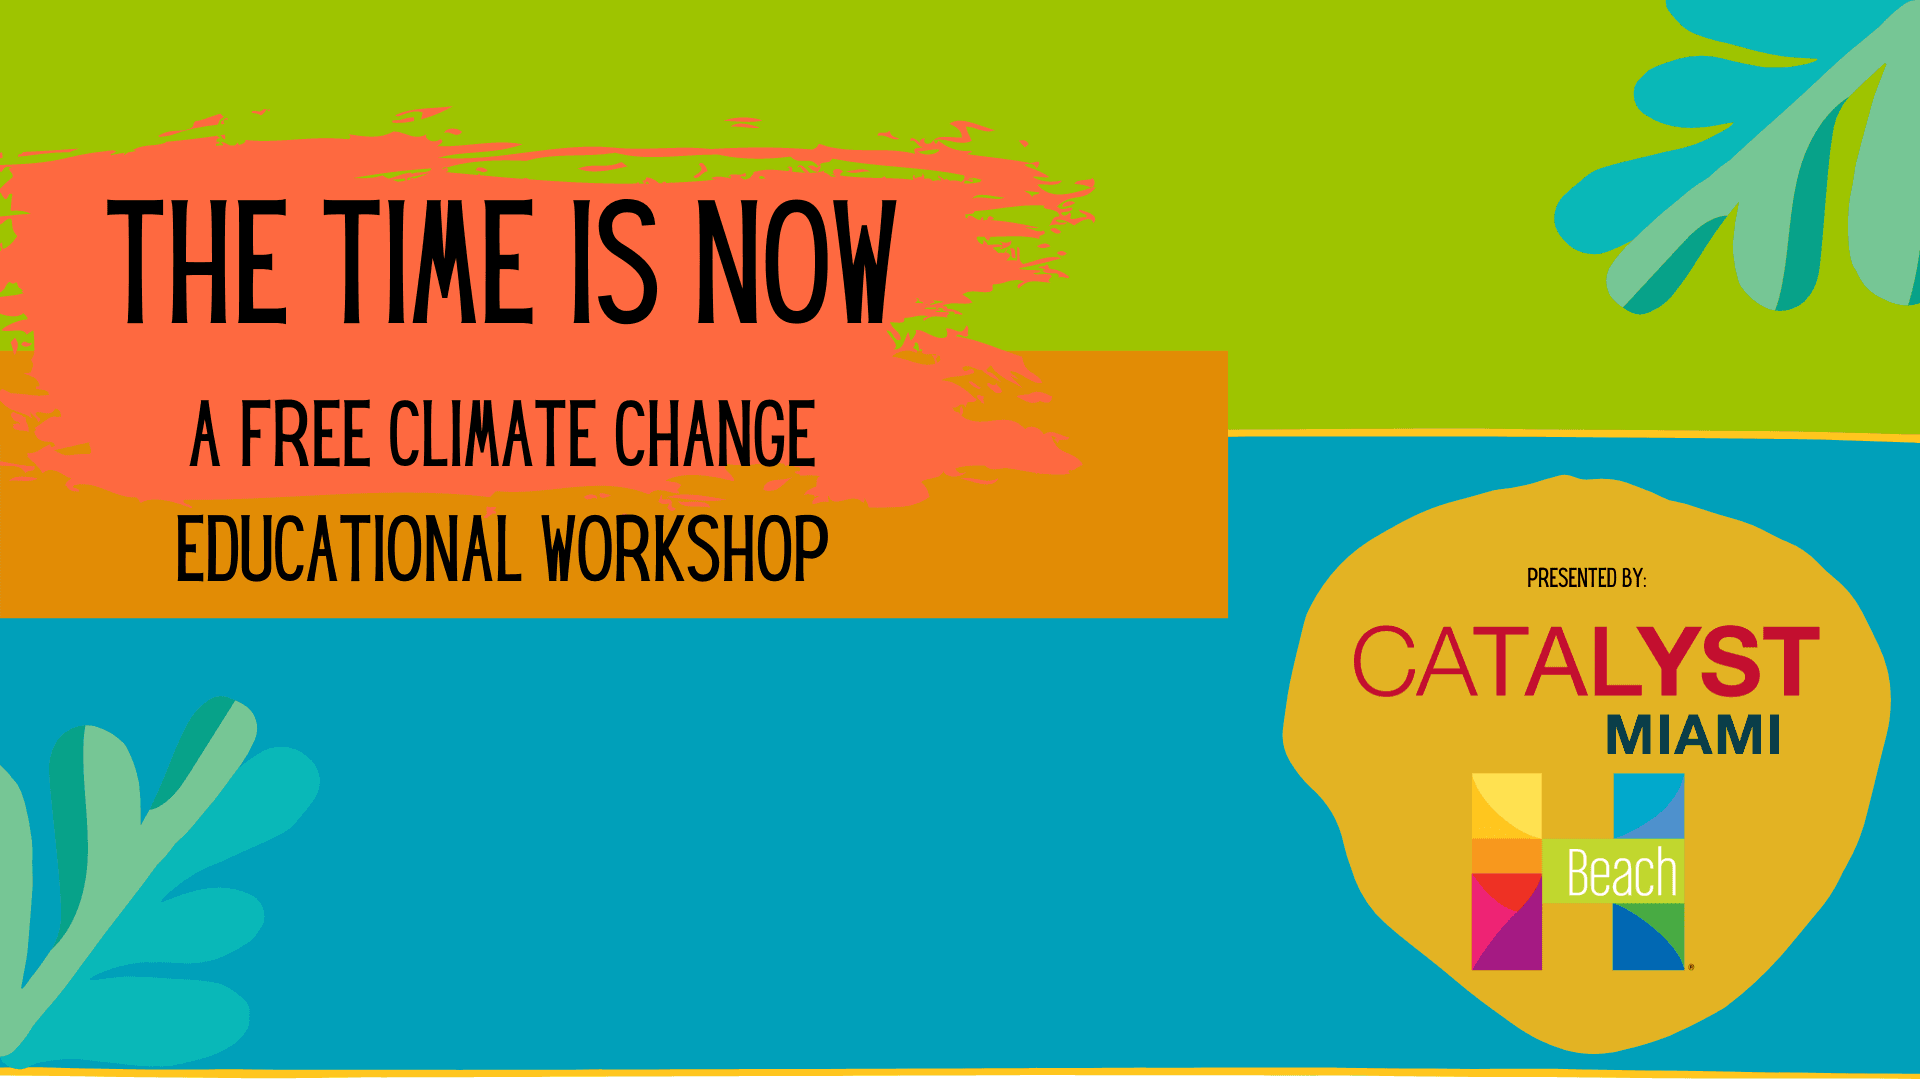 The time is now a free climate change educational workshop